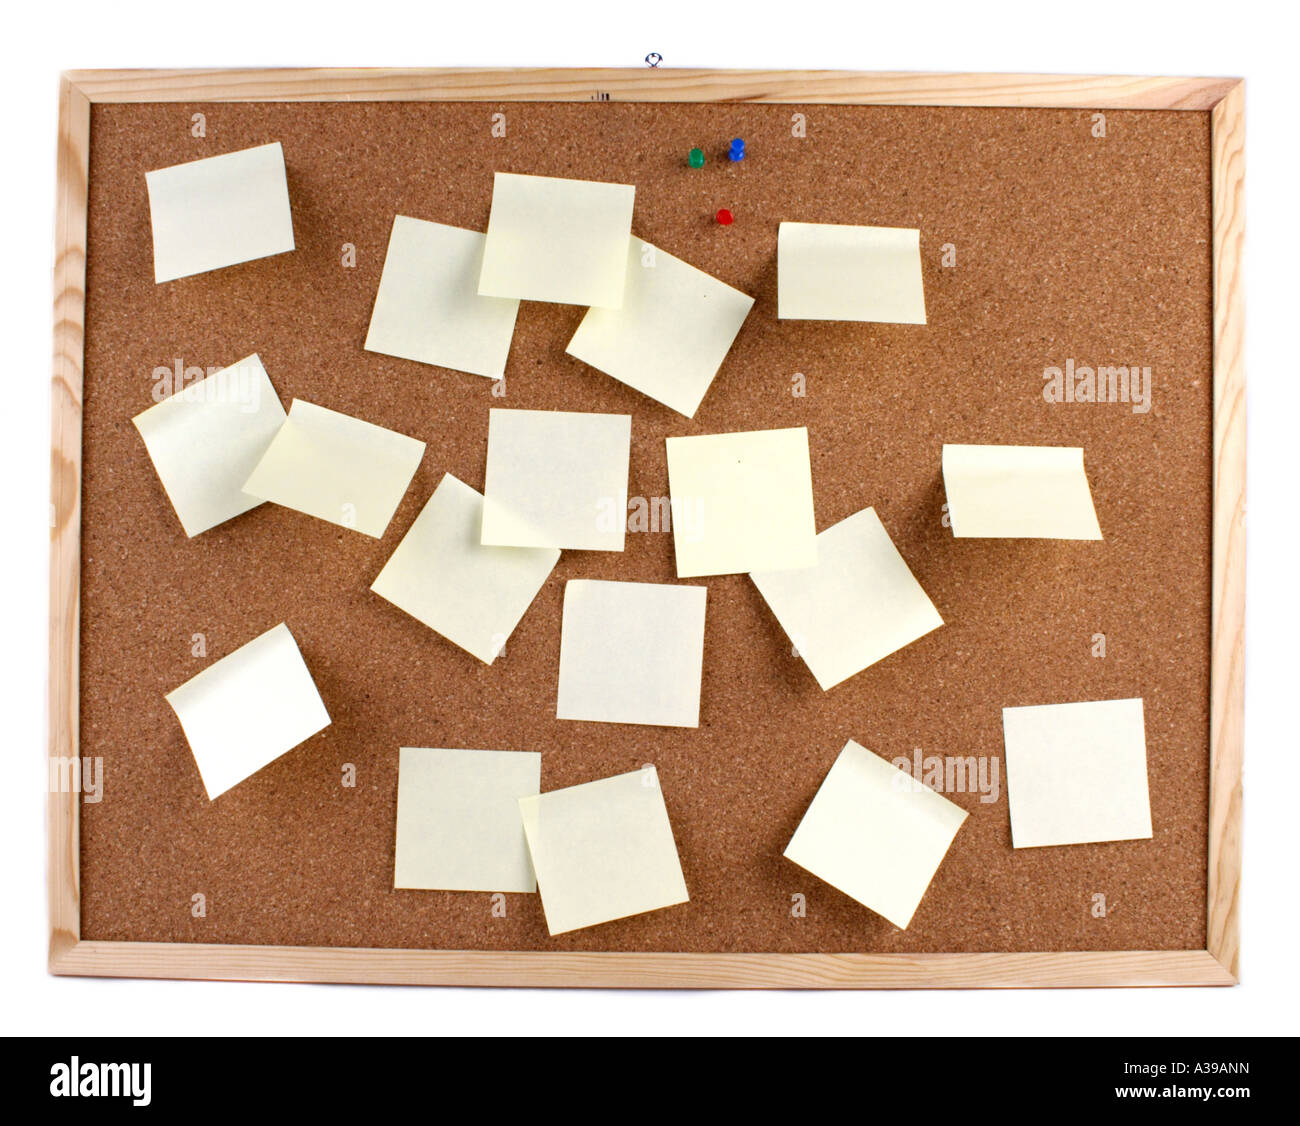 Noticeboard - Stock Image